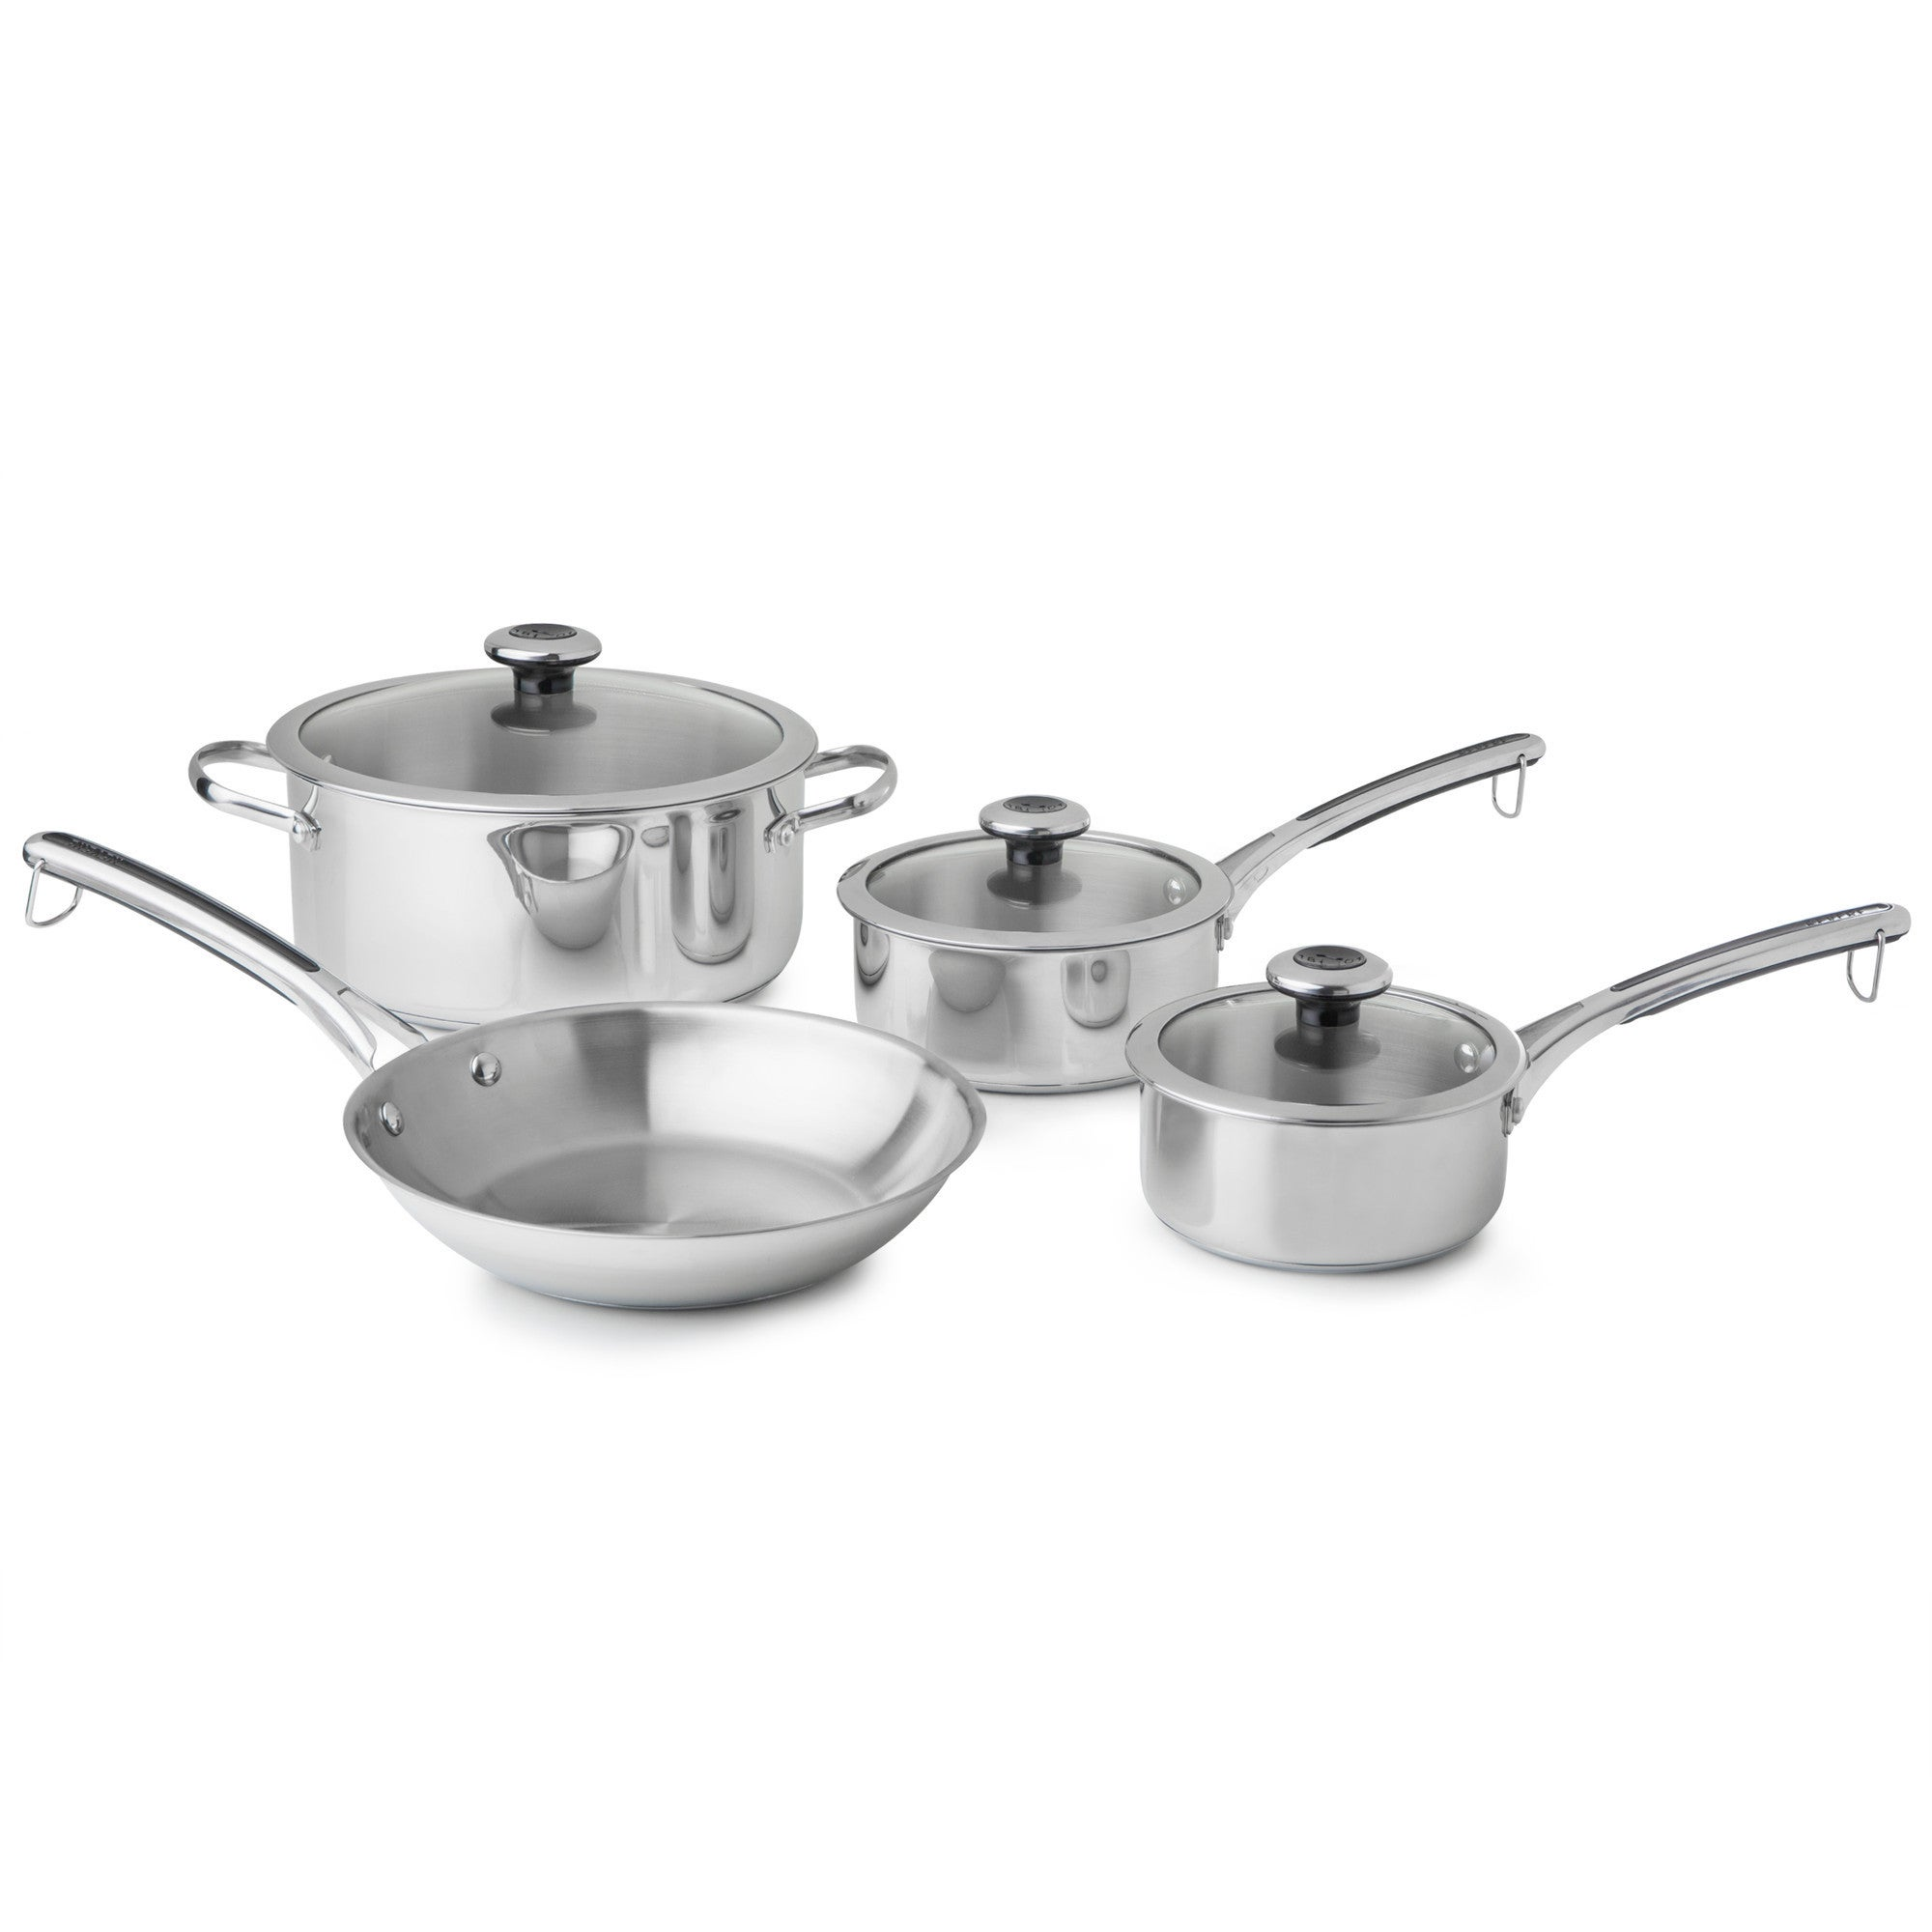 Plymouth Copper Confidence Core 7-pc Stainless Steel Cook...